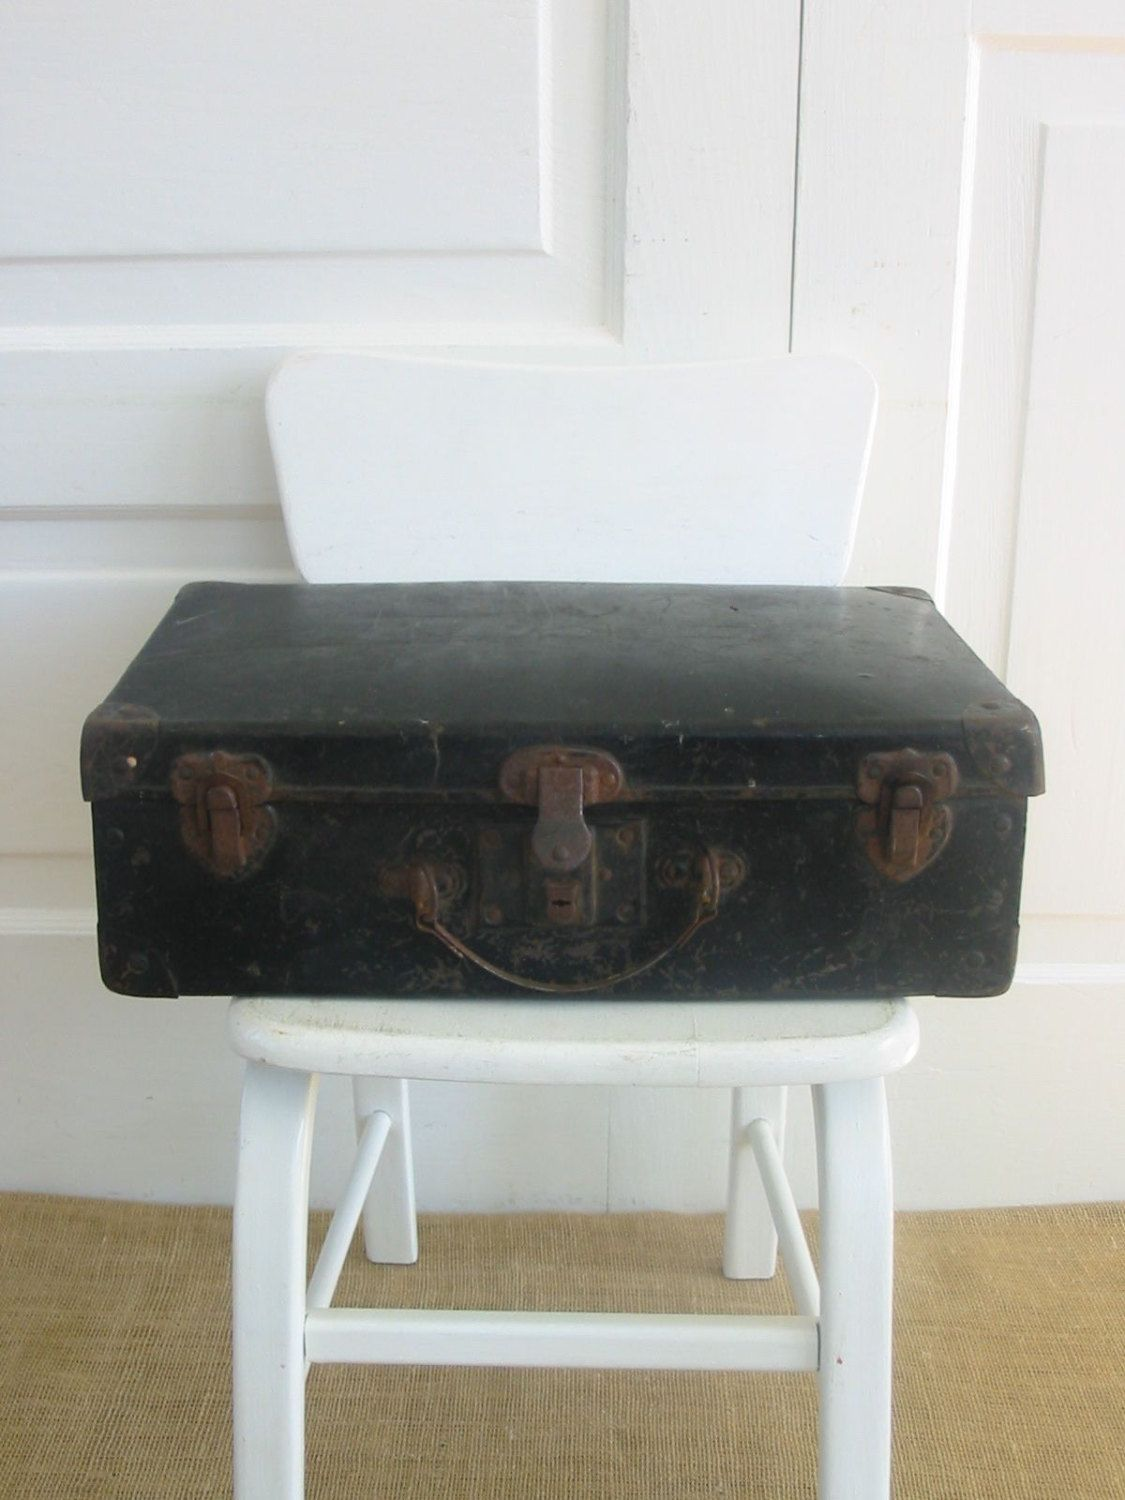 Vintage Black Case Suitcase Luggage Industrial Small Storage by vintagejane on Etsy